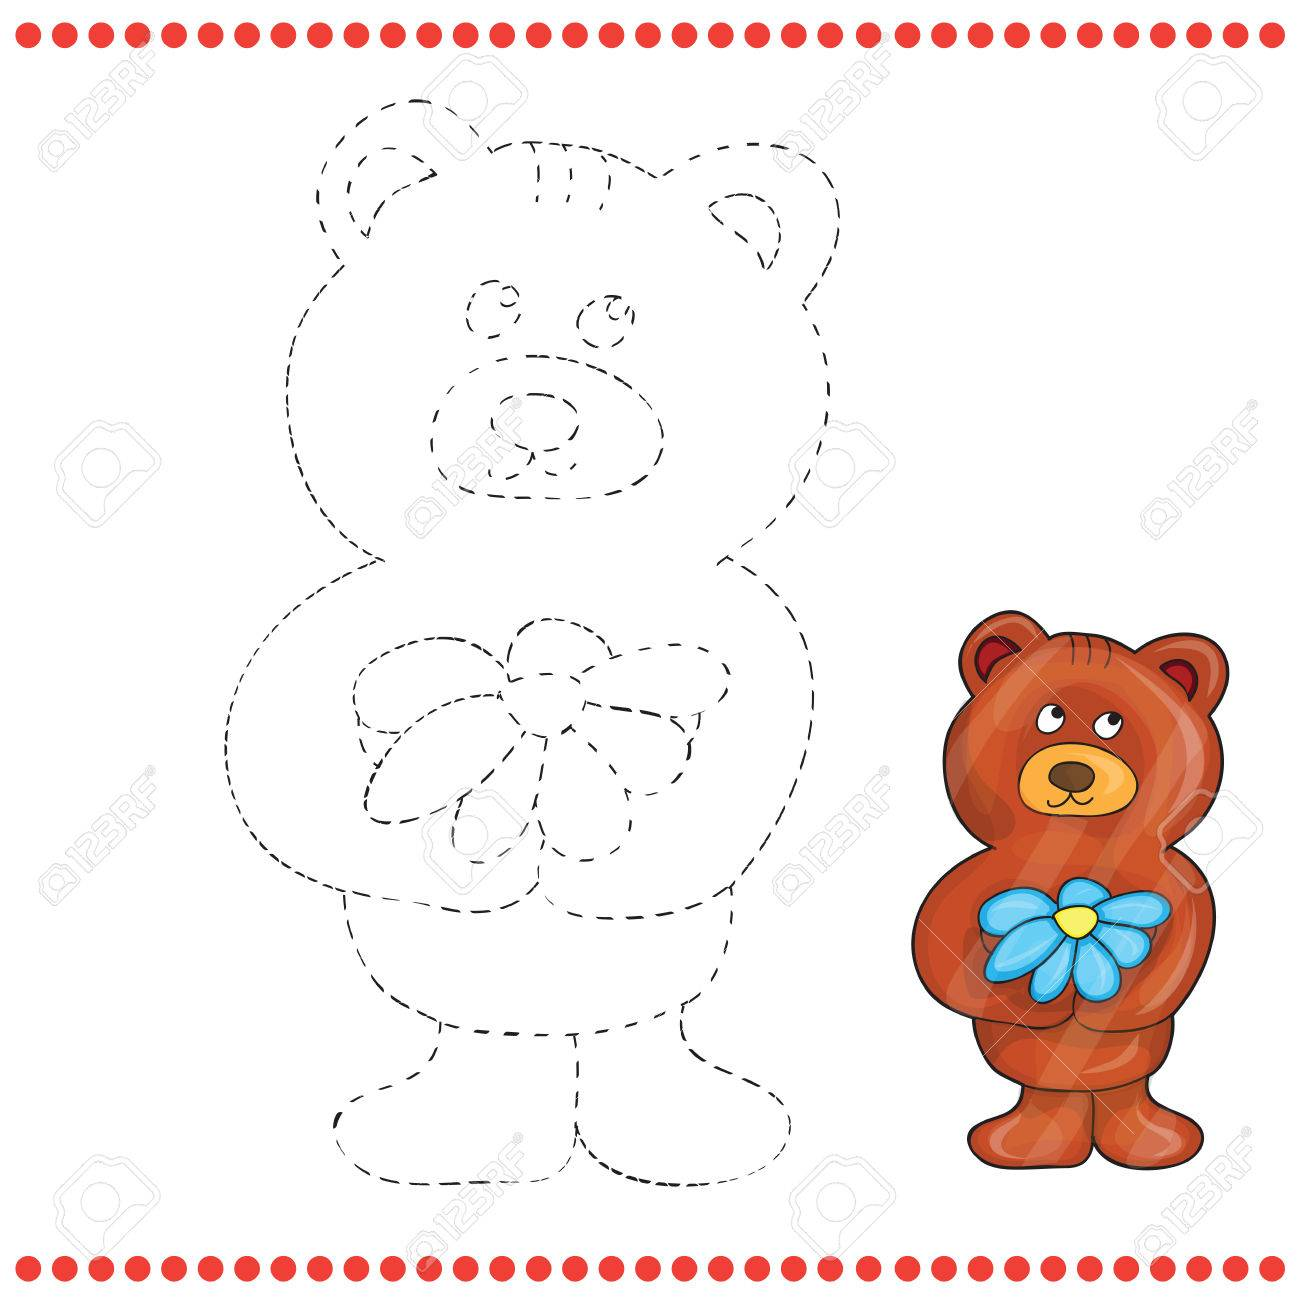 connect the dots and coloring page teddy bear stock vector